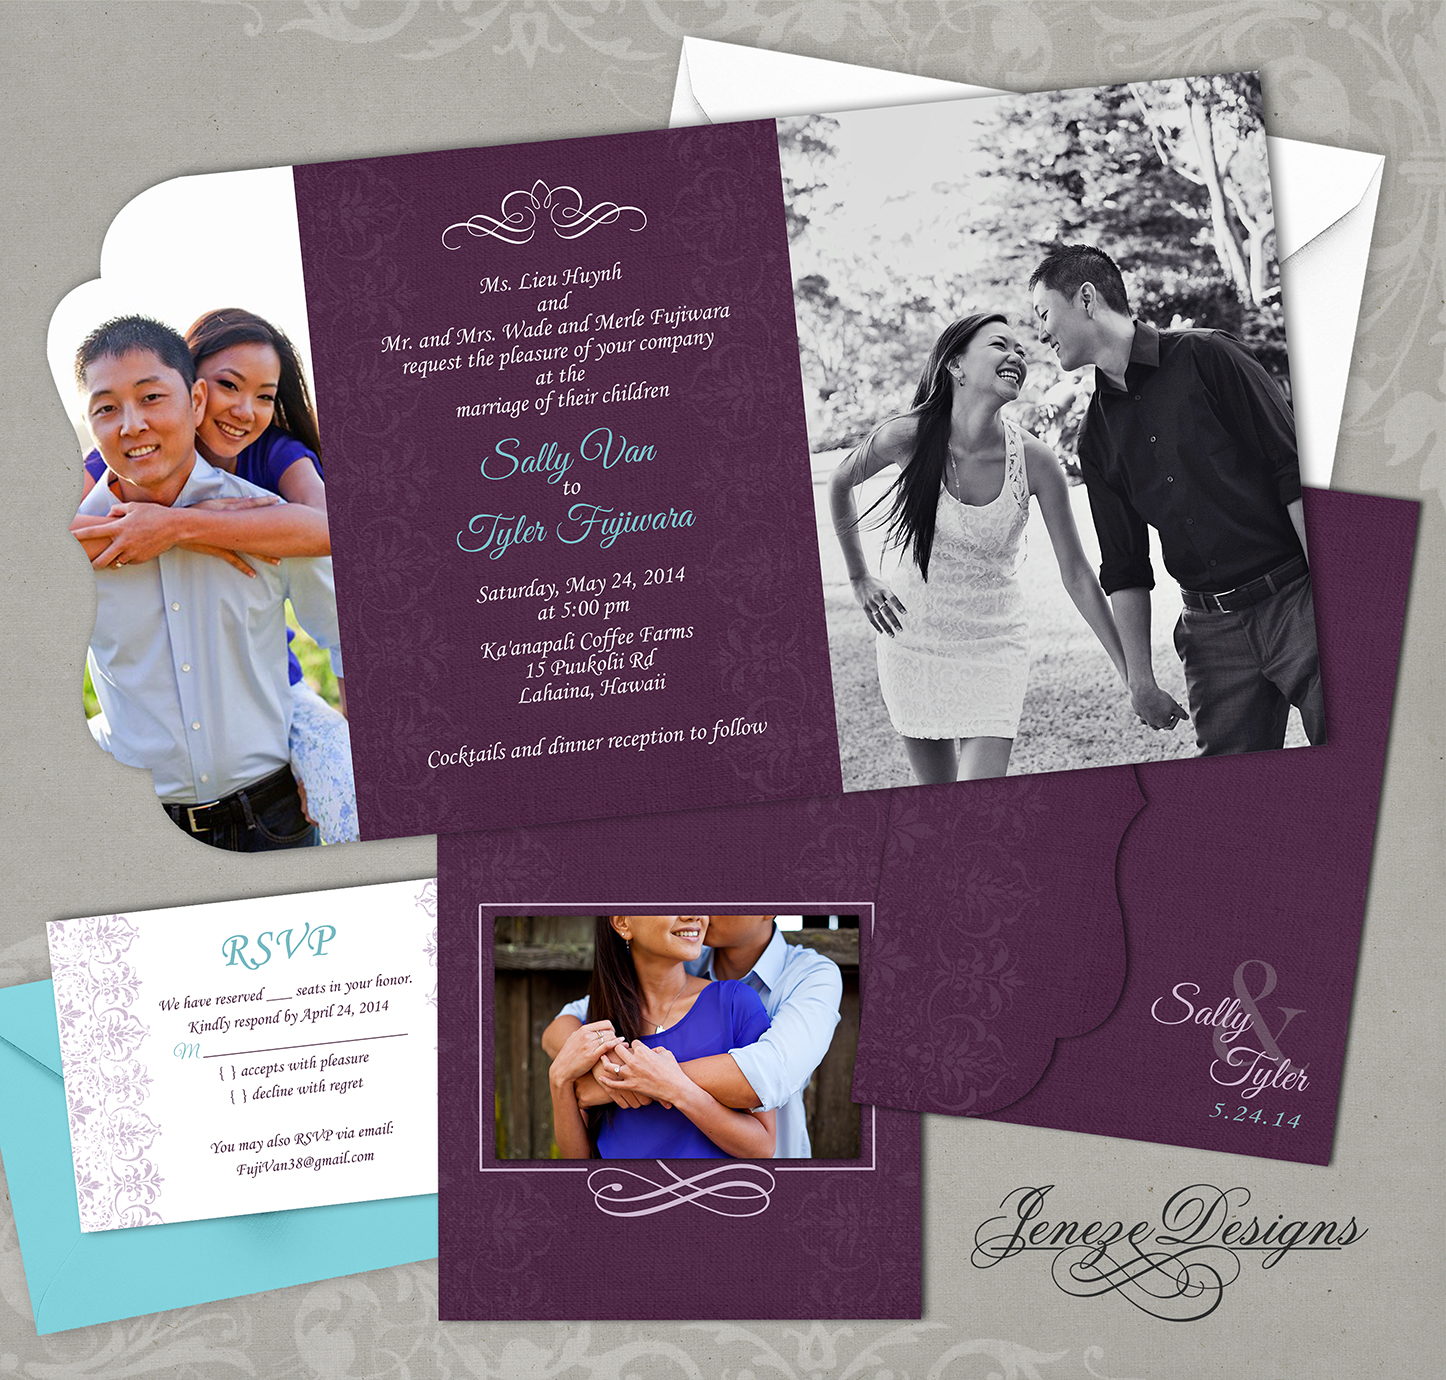 sally and tyler lds wedding invitations LF